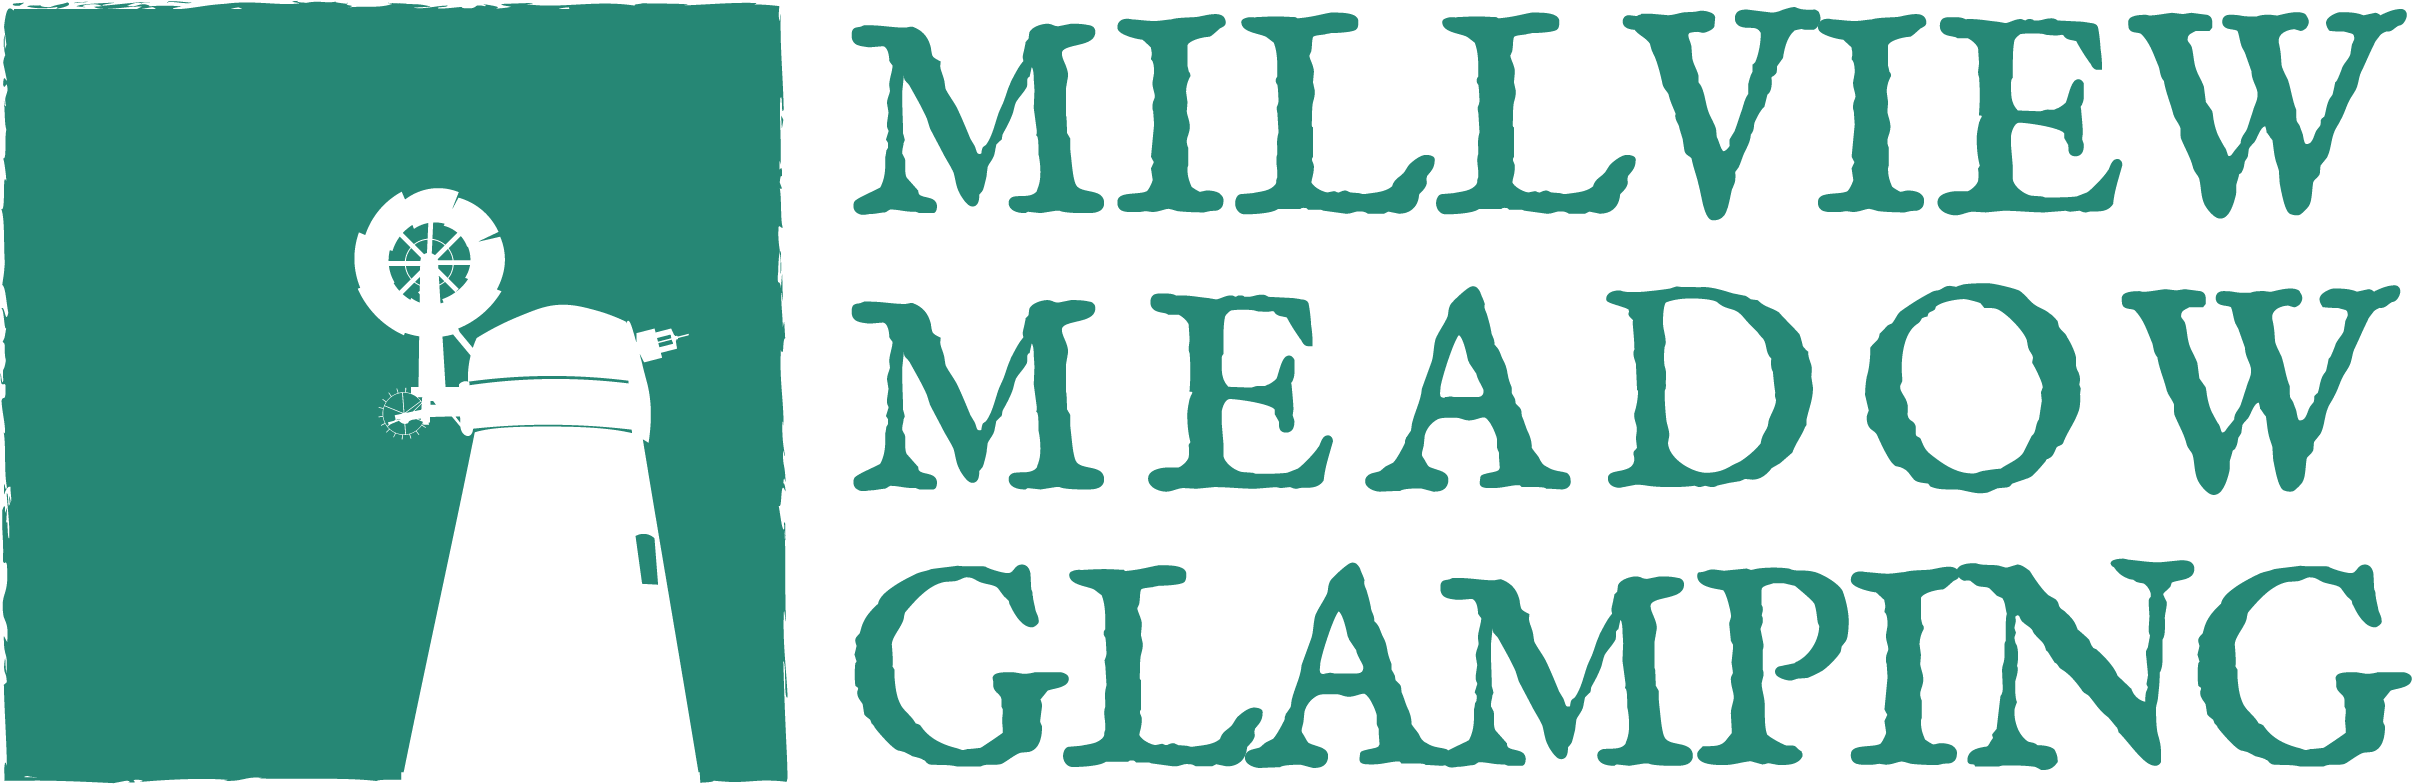 logo design for millview meadow